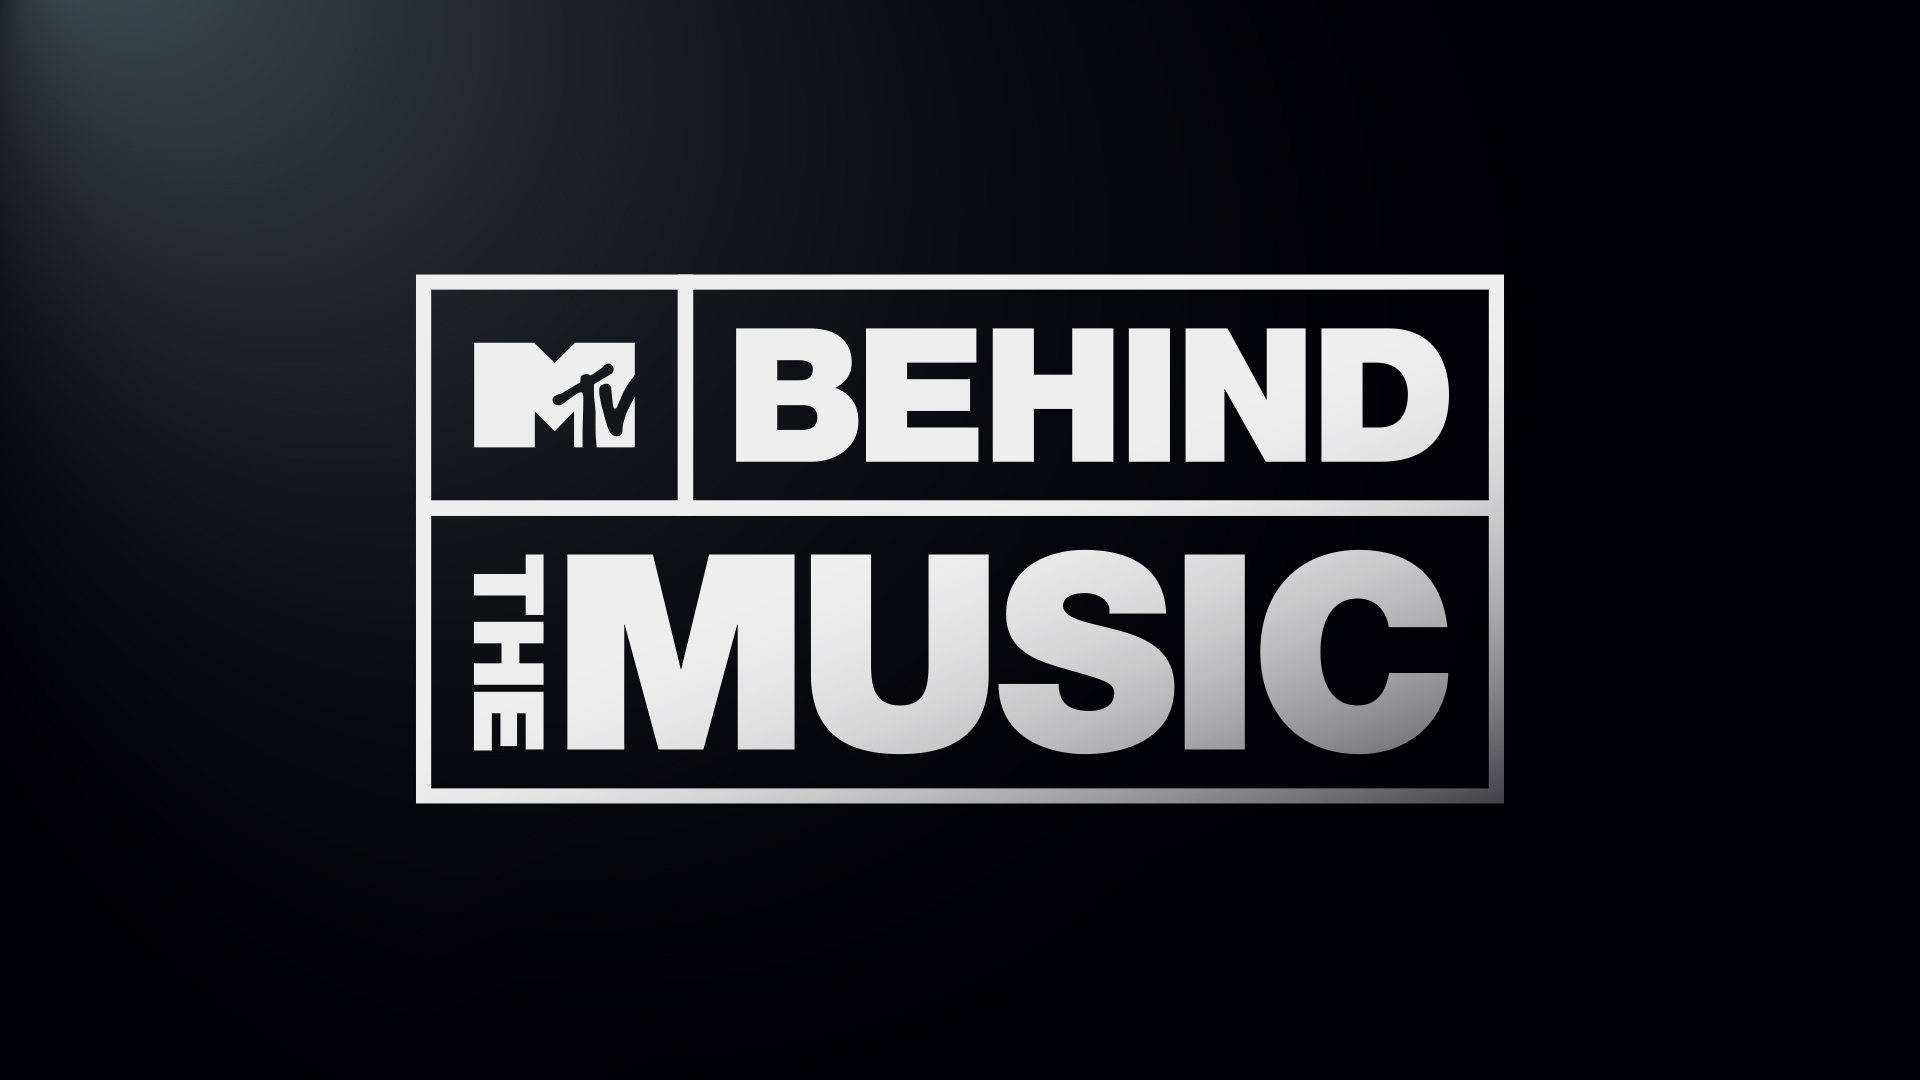 MTV Brings Back 'Behind the Music' in Weekly Podcast Series (Podcast News Roundup)